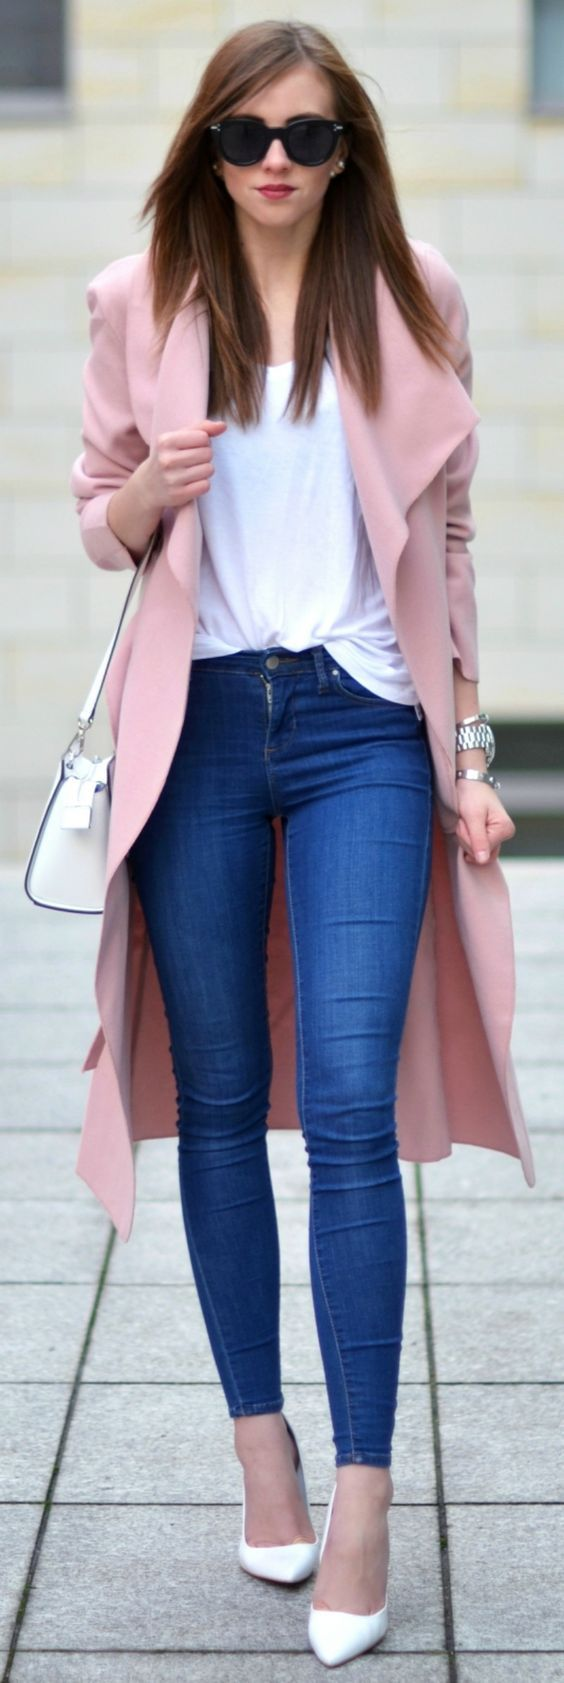 This is how pastels should be worn in winter. Via Barbora Ondrackova Shirt:  Acne